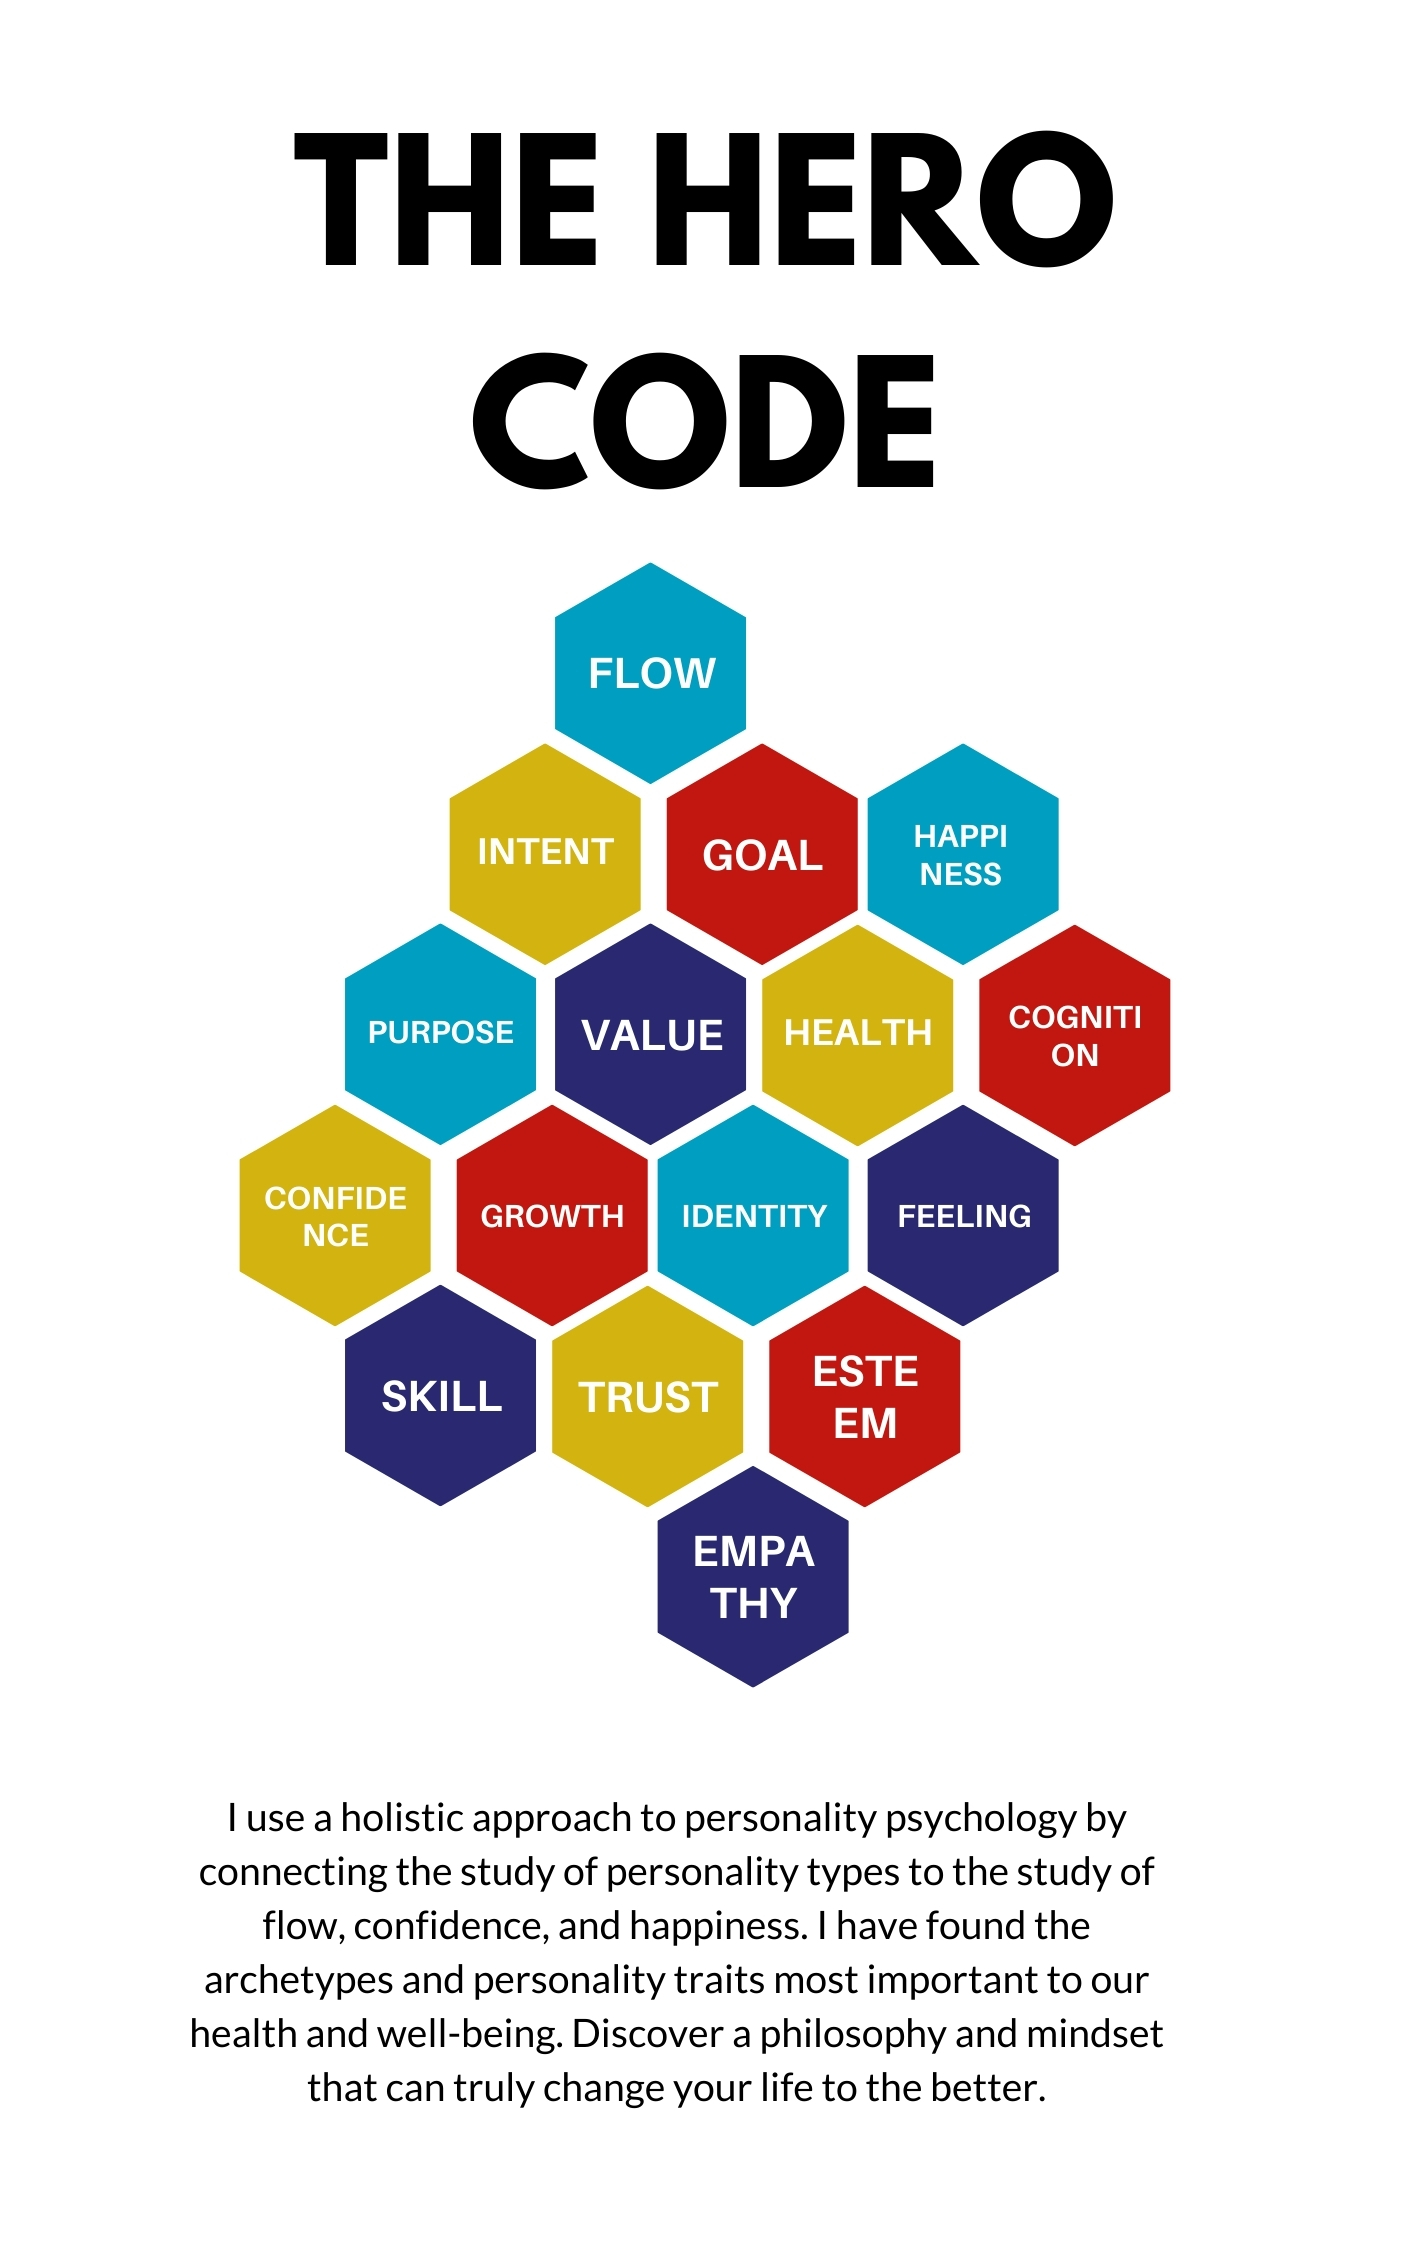 The Hero Code Ebook – Finding Flow & Your Personality Type